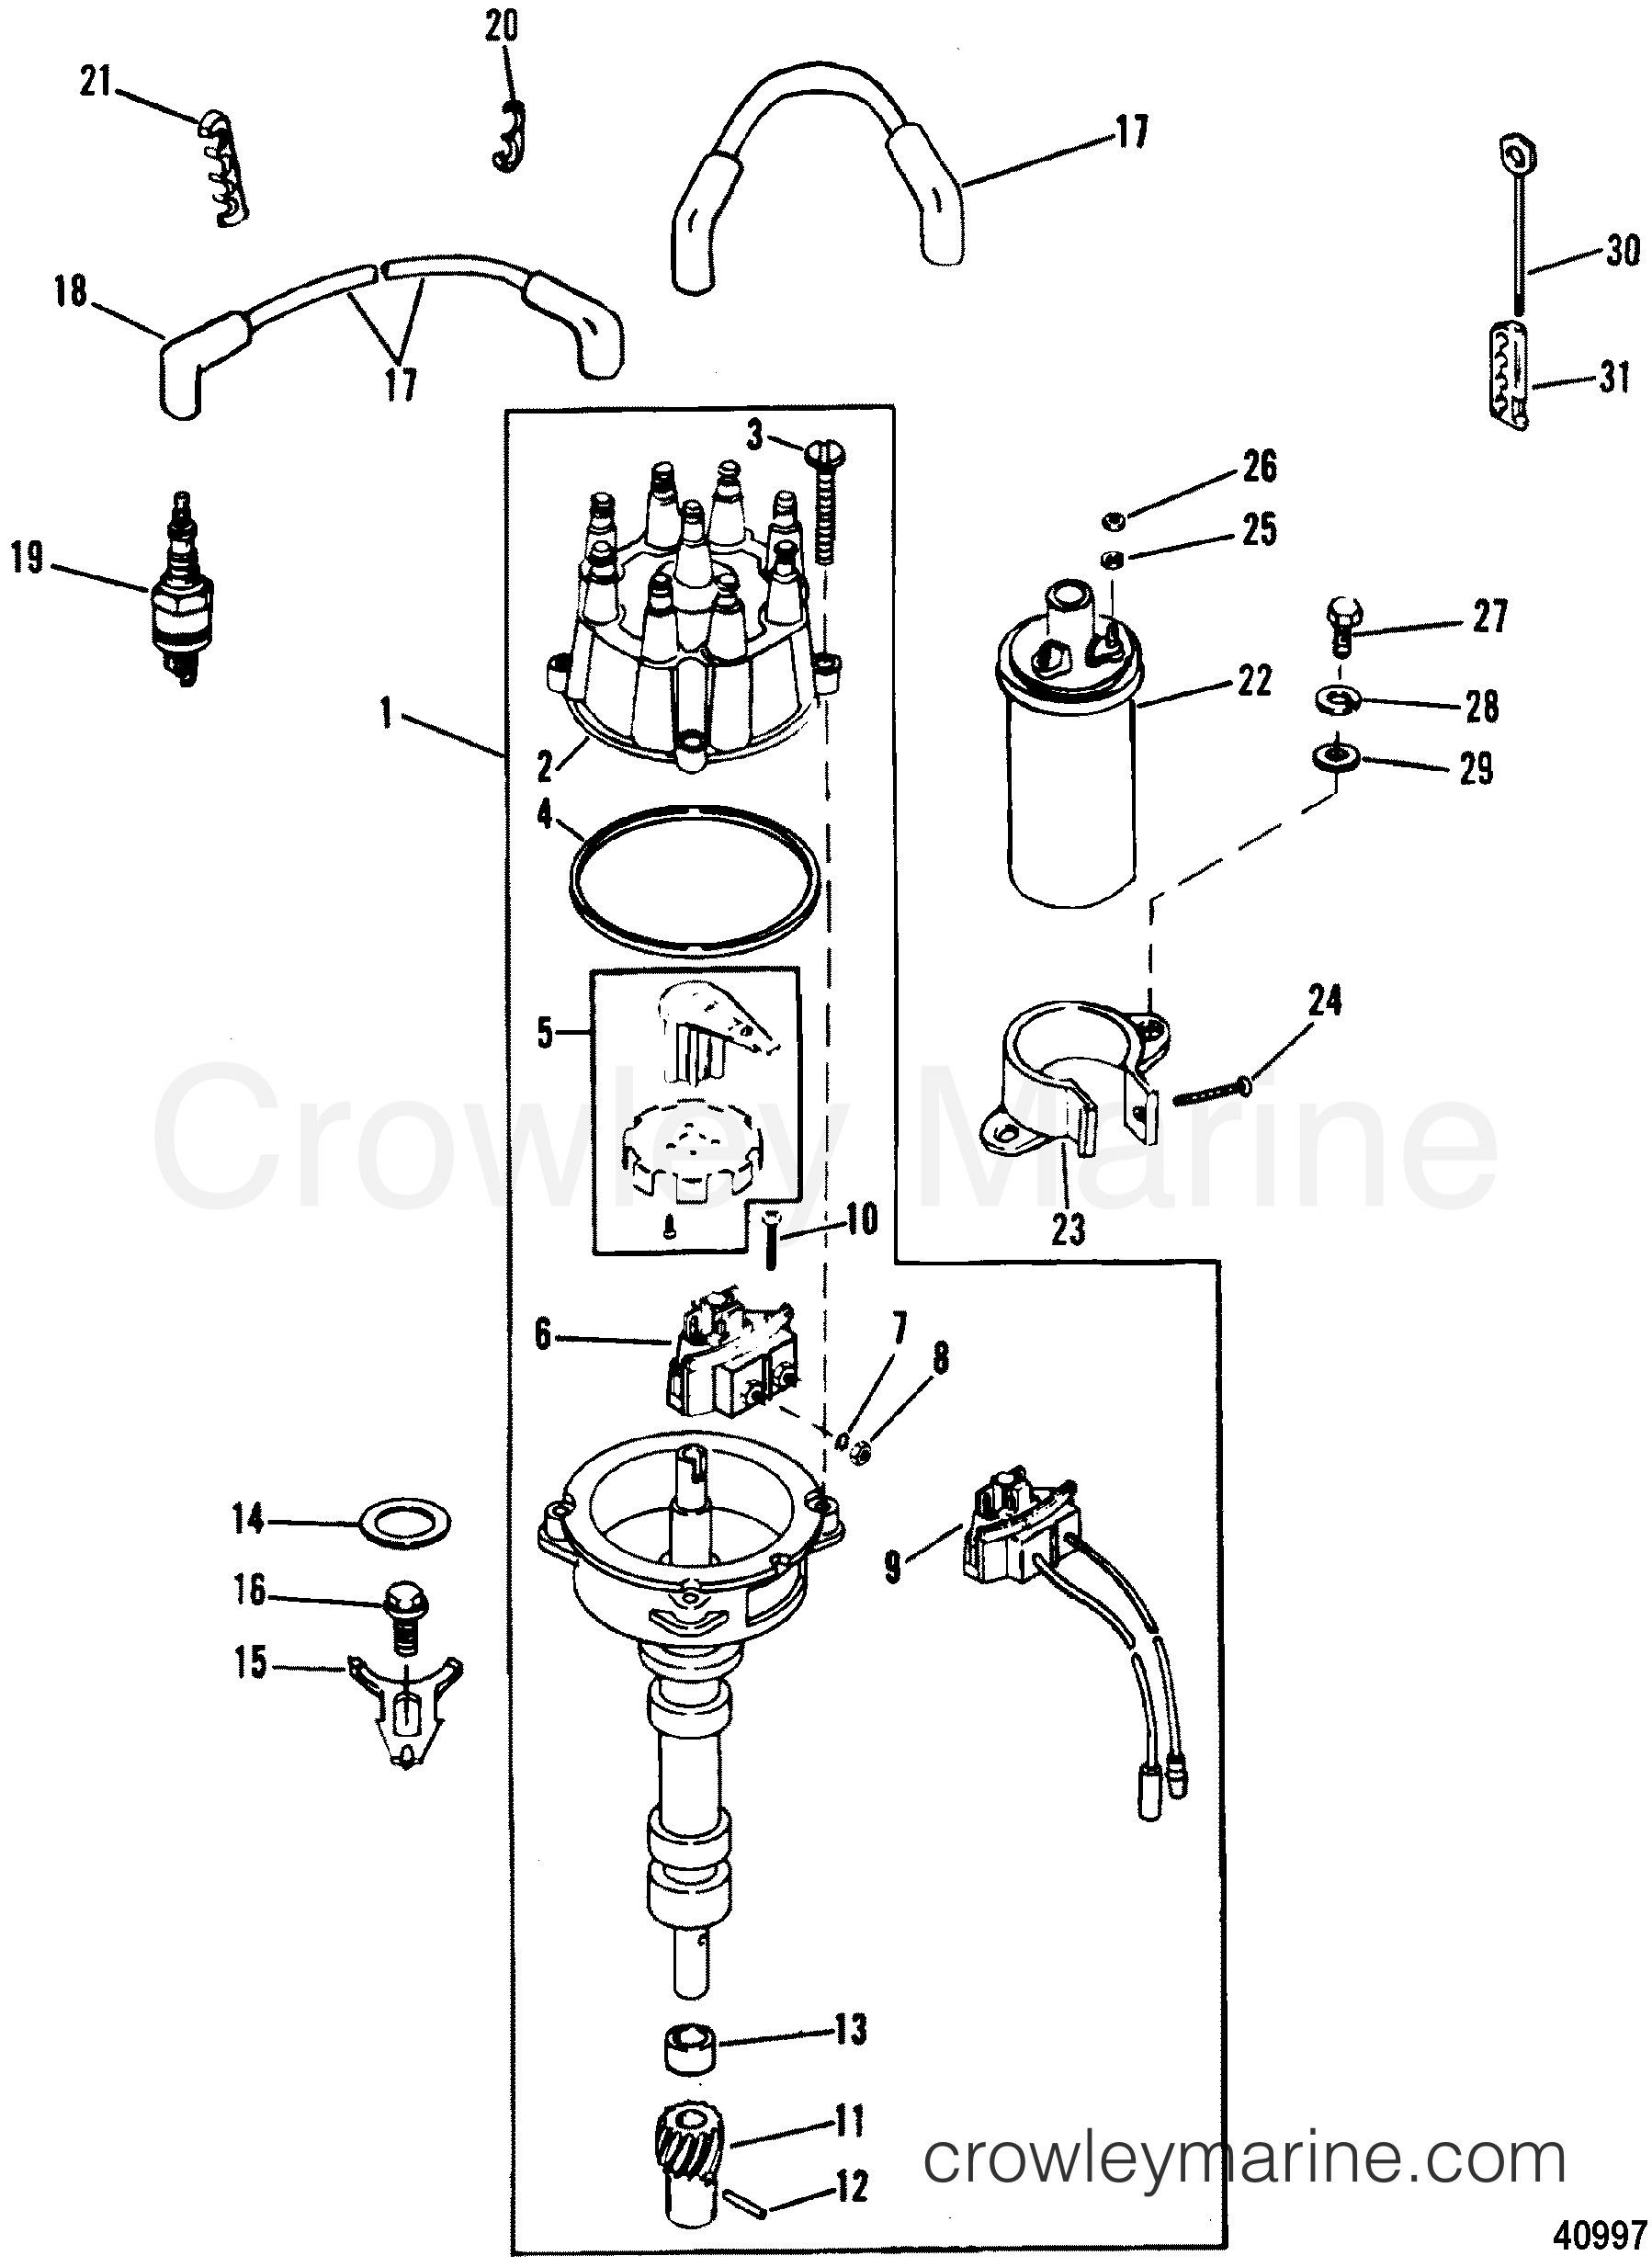 Mercruiser Ignition Wiring Diagram Image Incredible Chromatex With Regard To Mercruiser Ignition Wiring Diagram Diagram Alternator Outboard